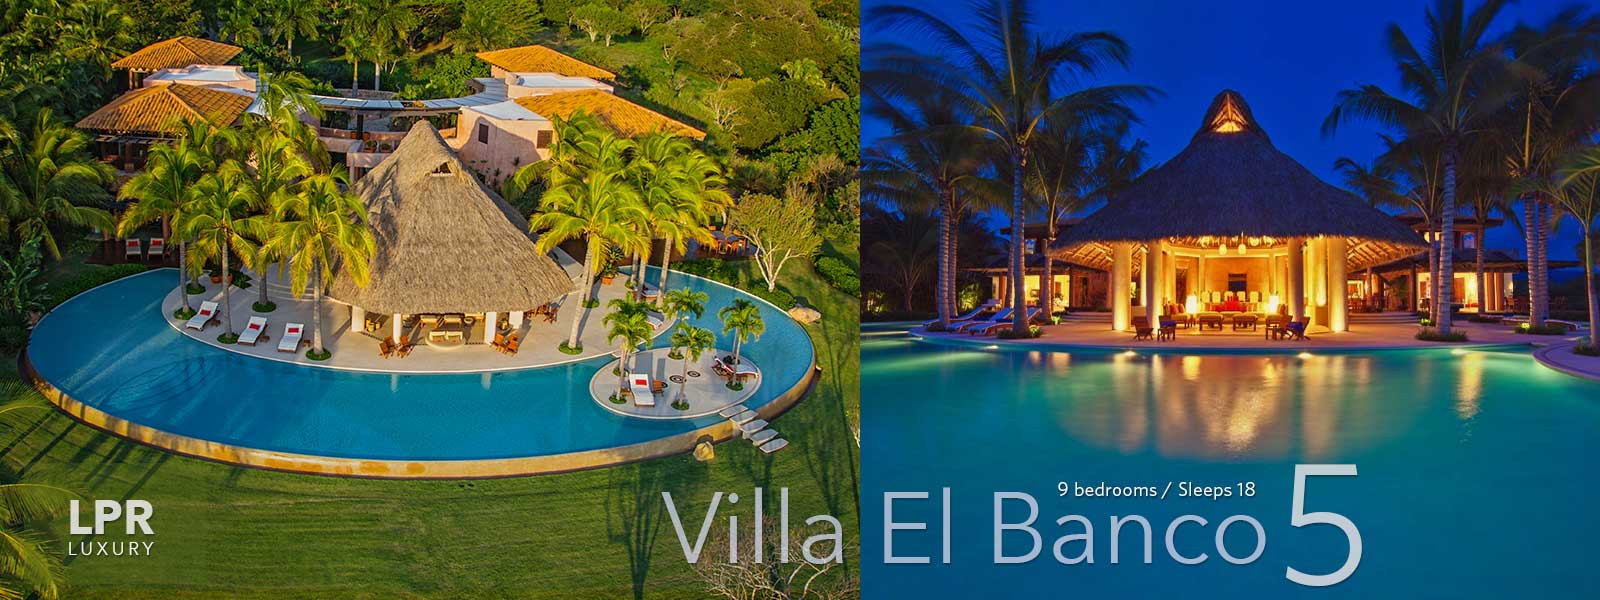 Villa El Banco 5 - Luxury Punta de Mita Real Estate and Vacation Rentals Villa